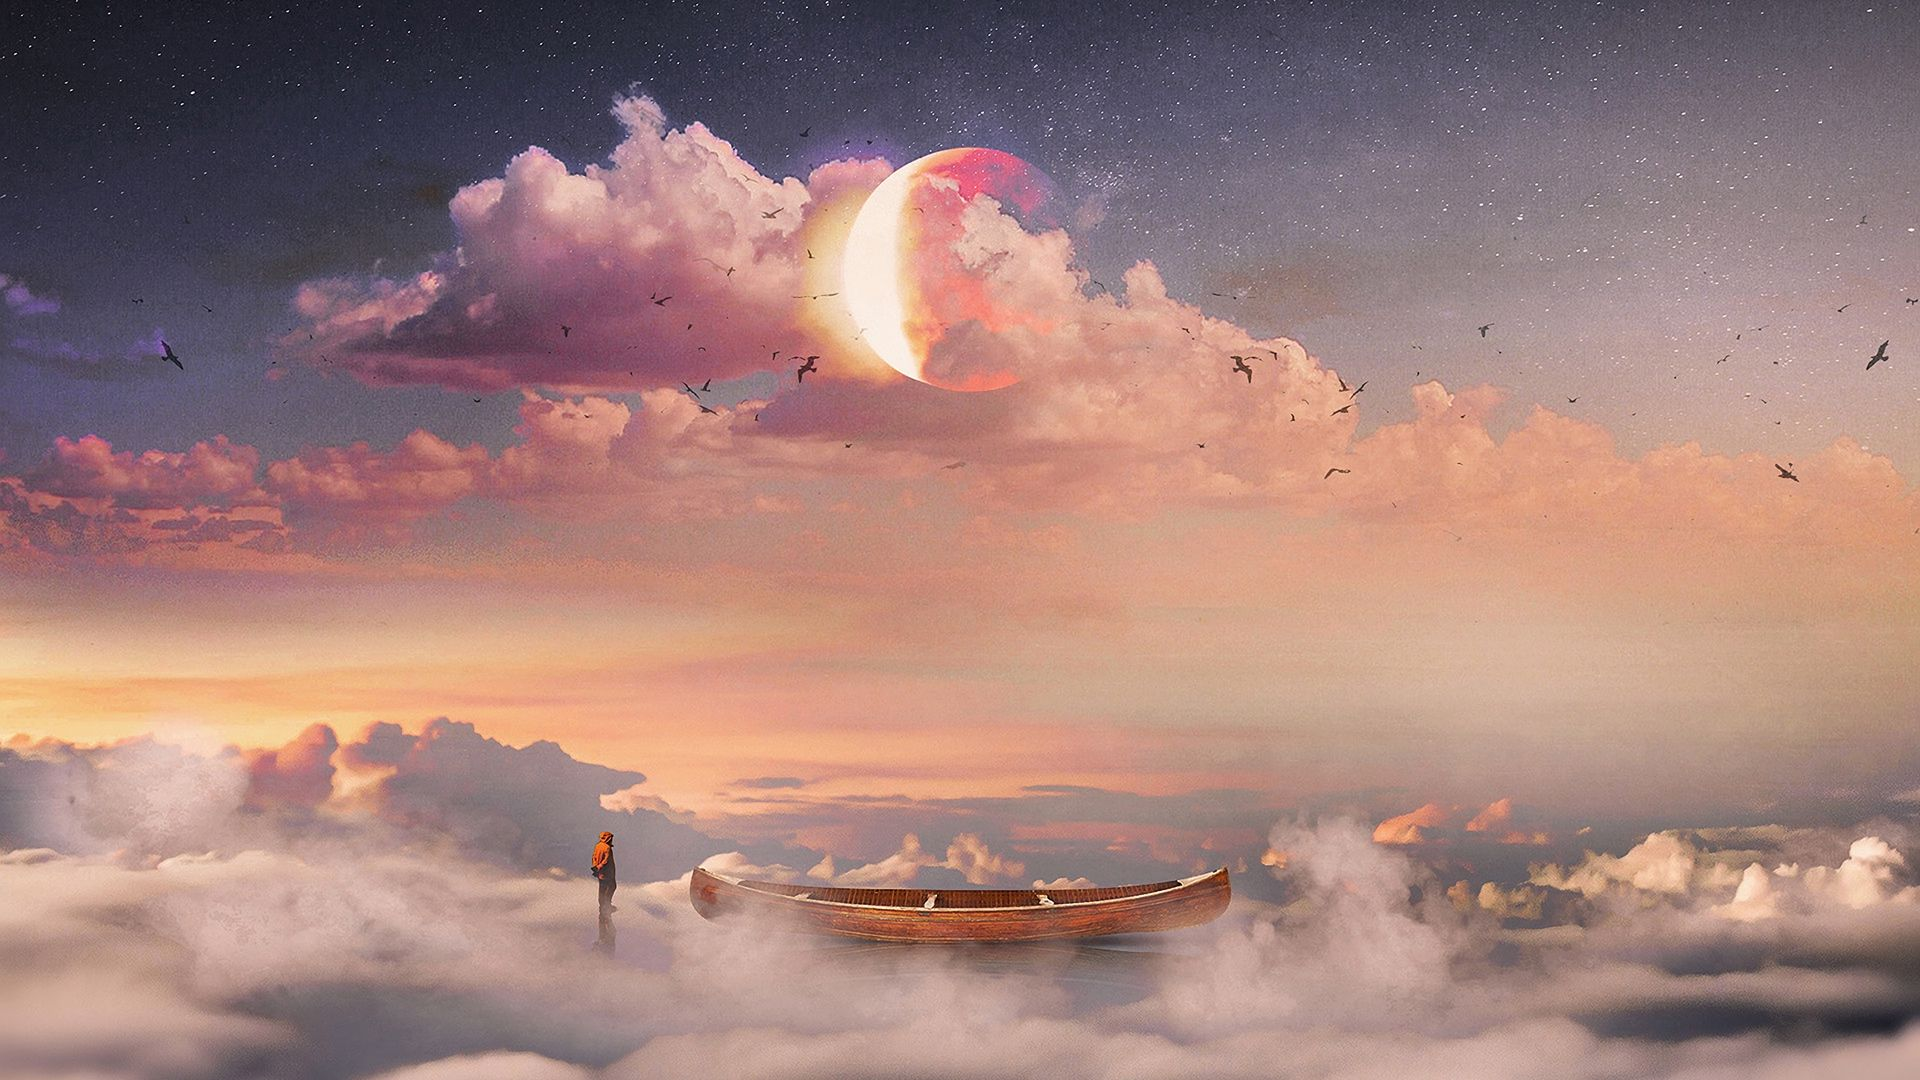 Download Wallpaper 1920x1080 Surrealism Boat Clouds Lonely Man St Surrealism Photography Aesthetic Desktop Wallpaper Computer Wallpaper Desktop Wallpapers